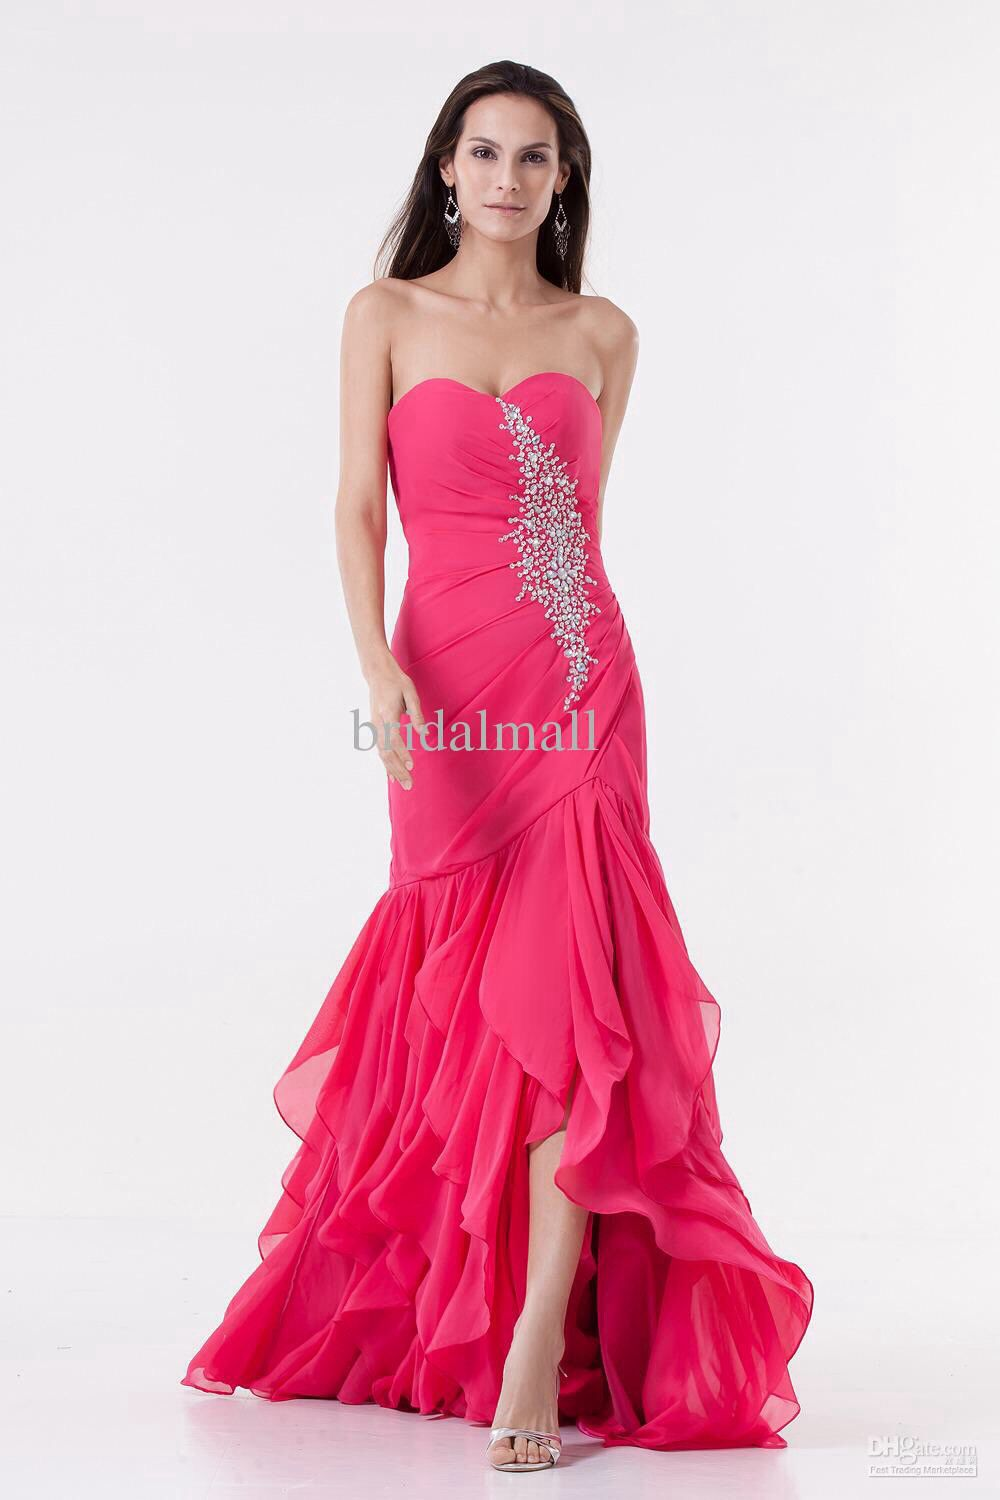 Prom dress | Prom dresses | Pinterest